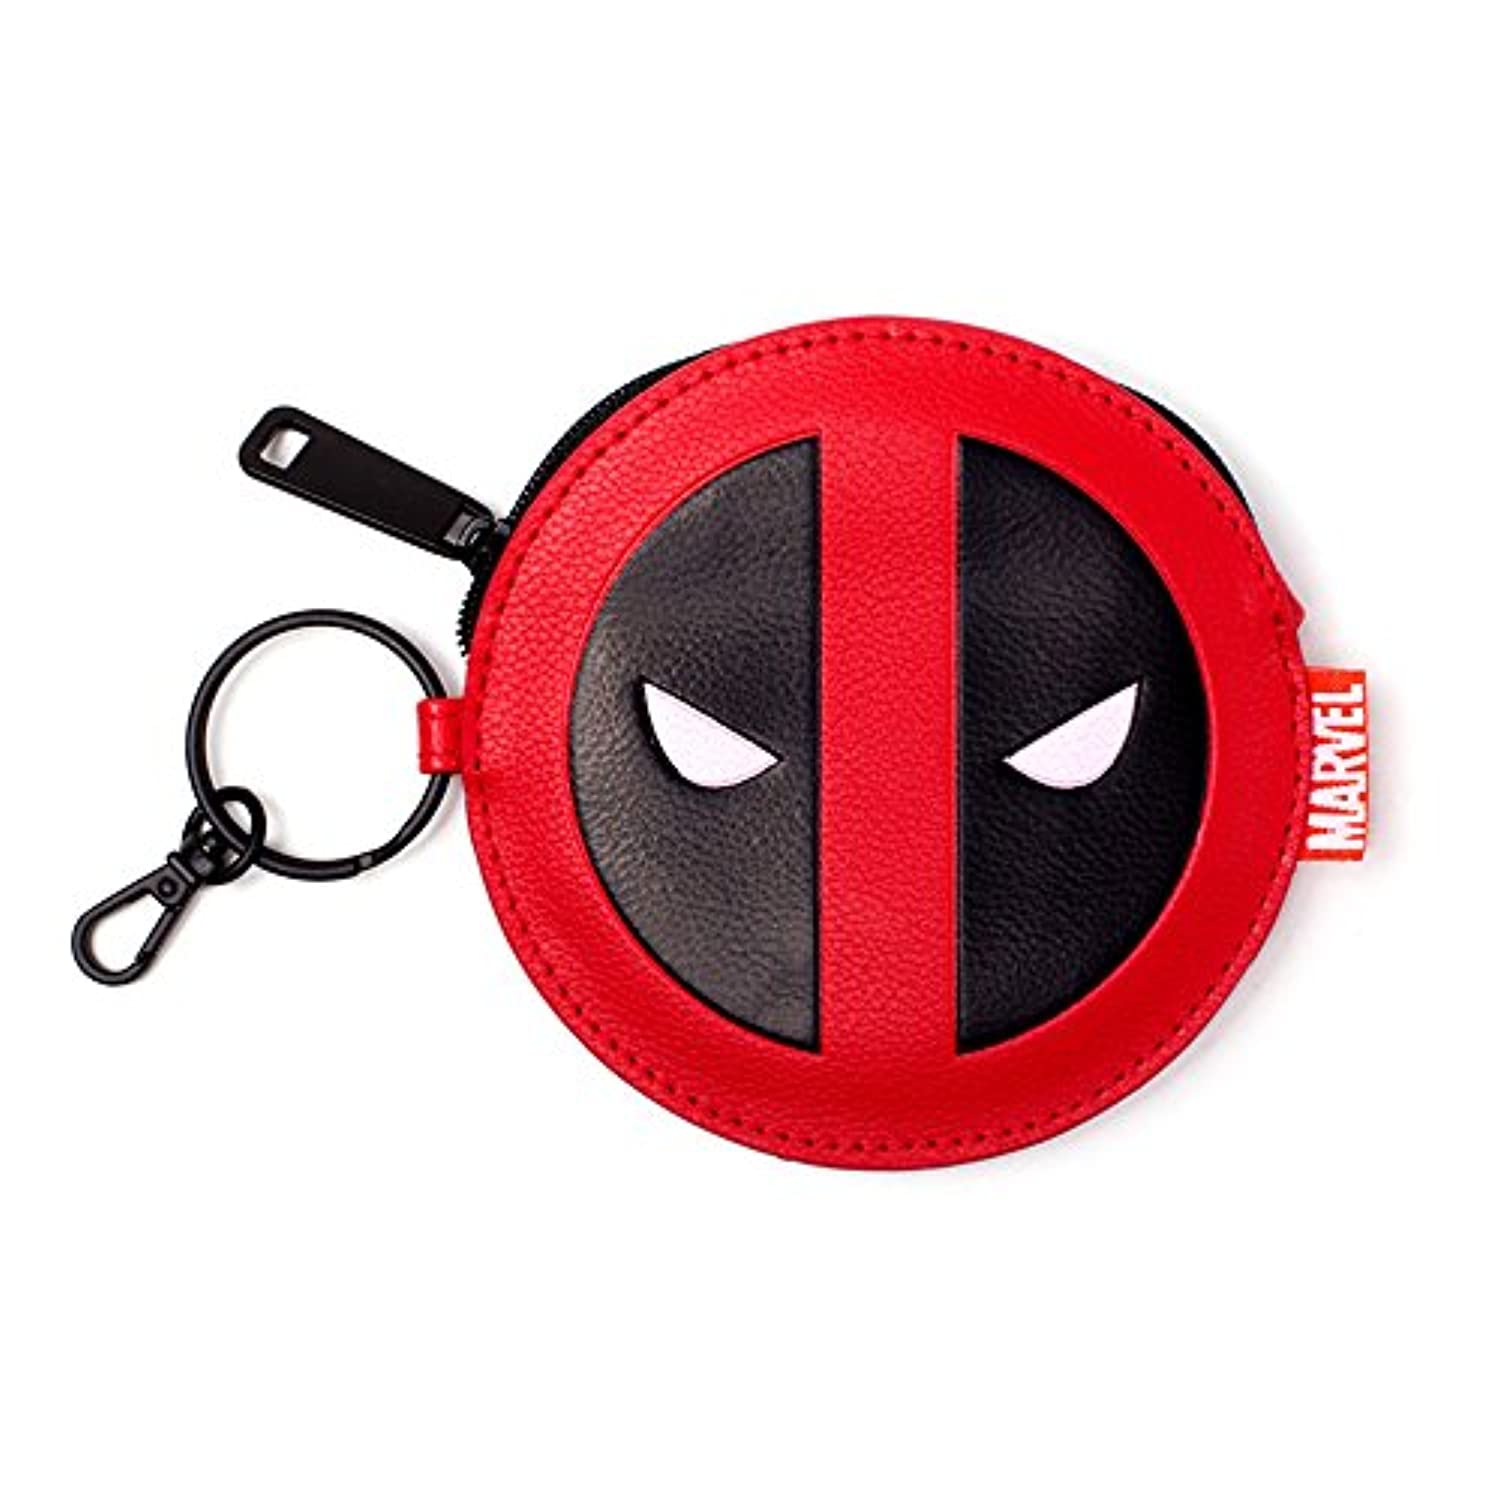 Marvel Comics Deadpool Face Coin Purse, Red/black Gw268775ded